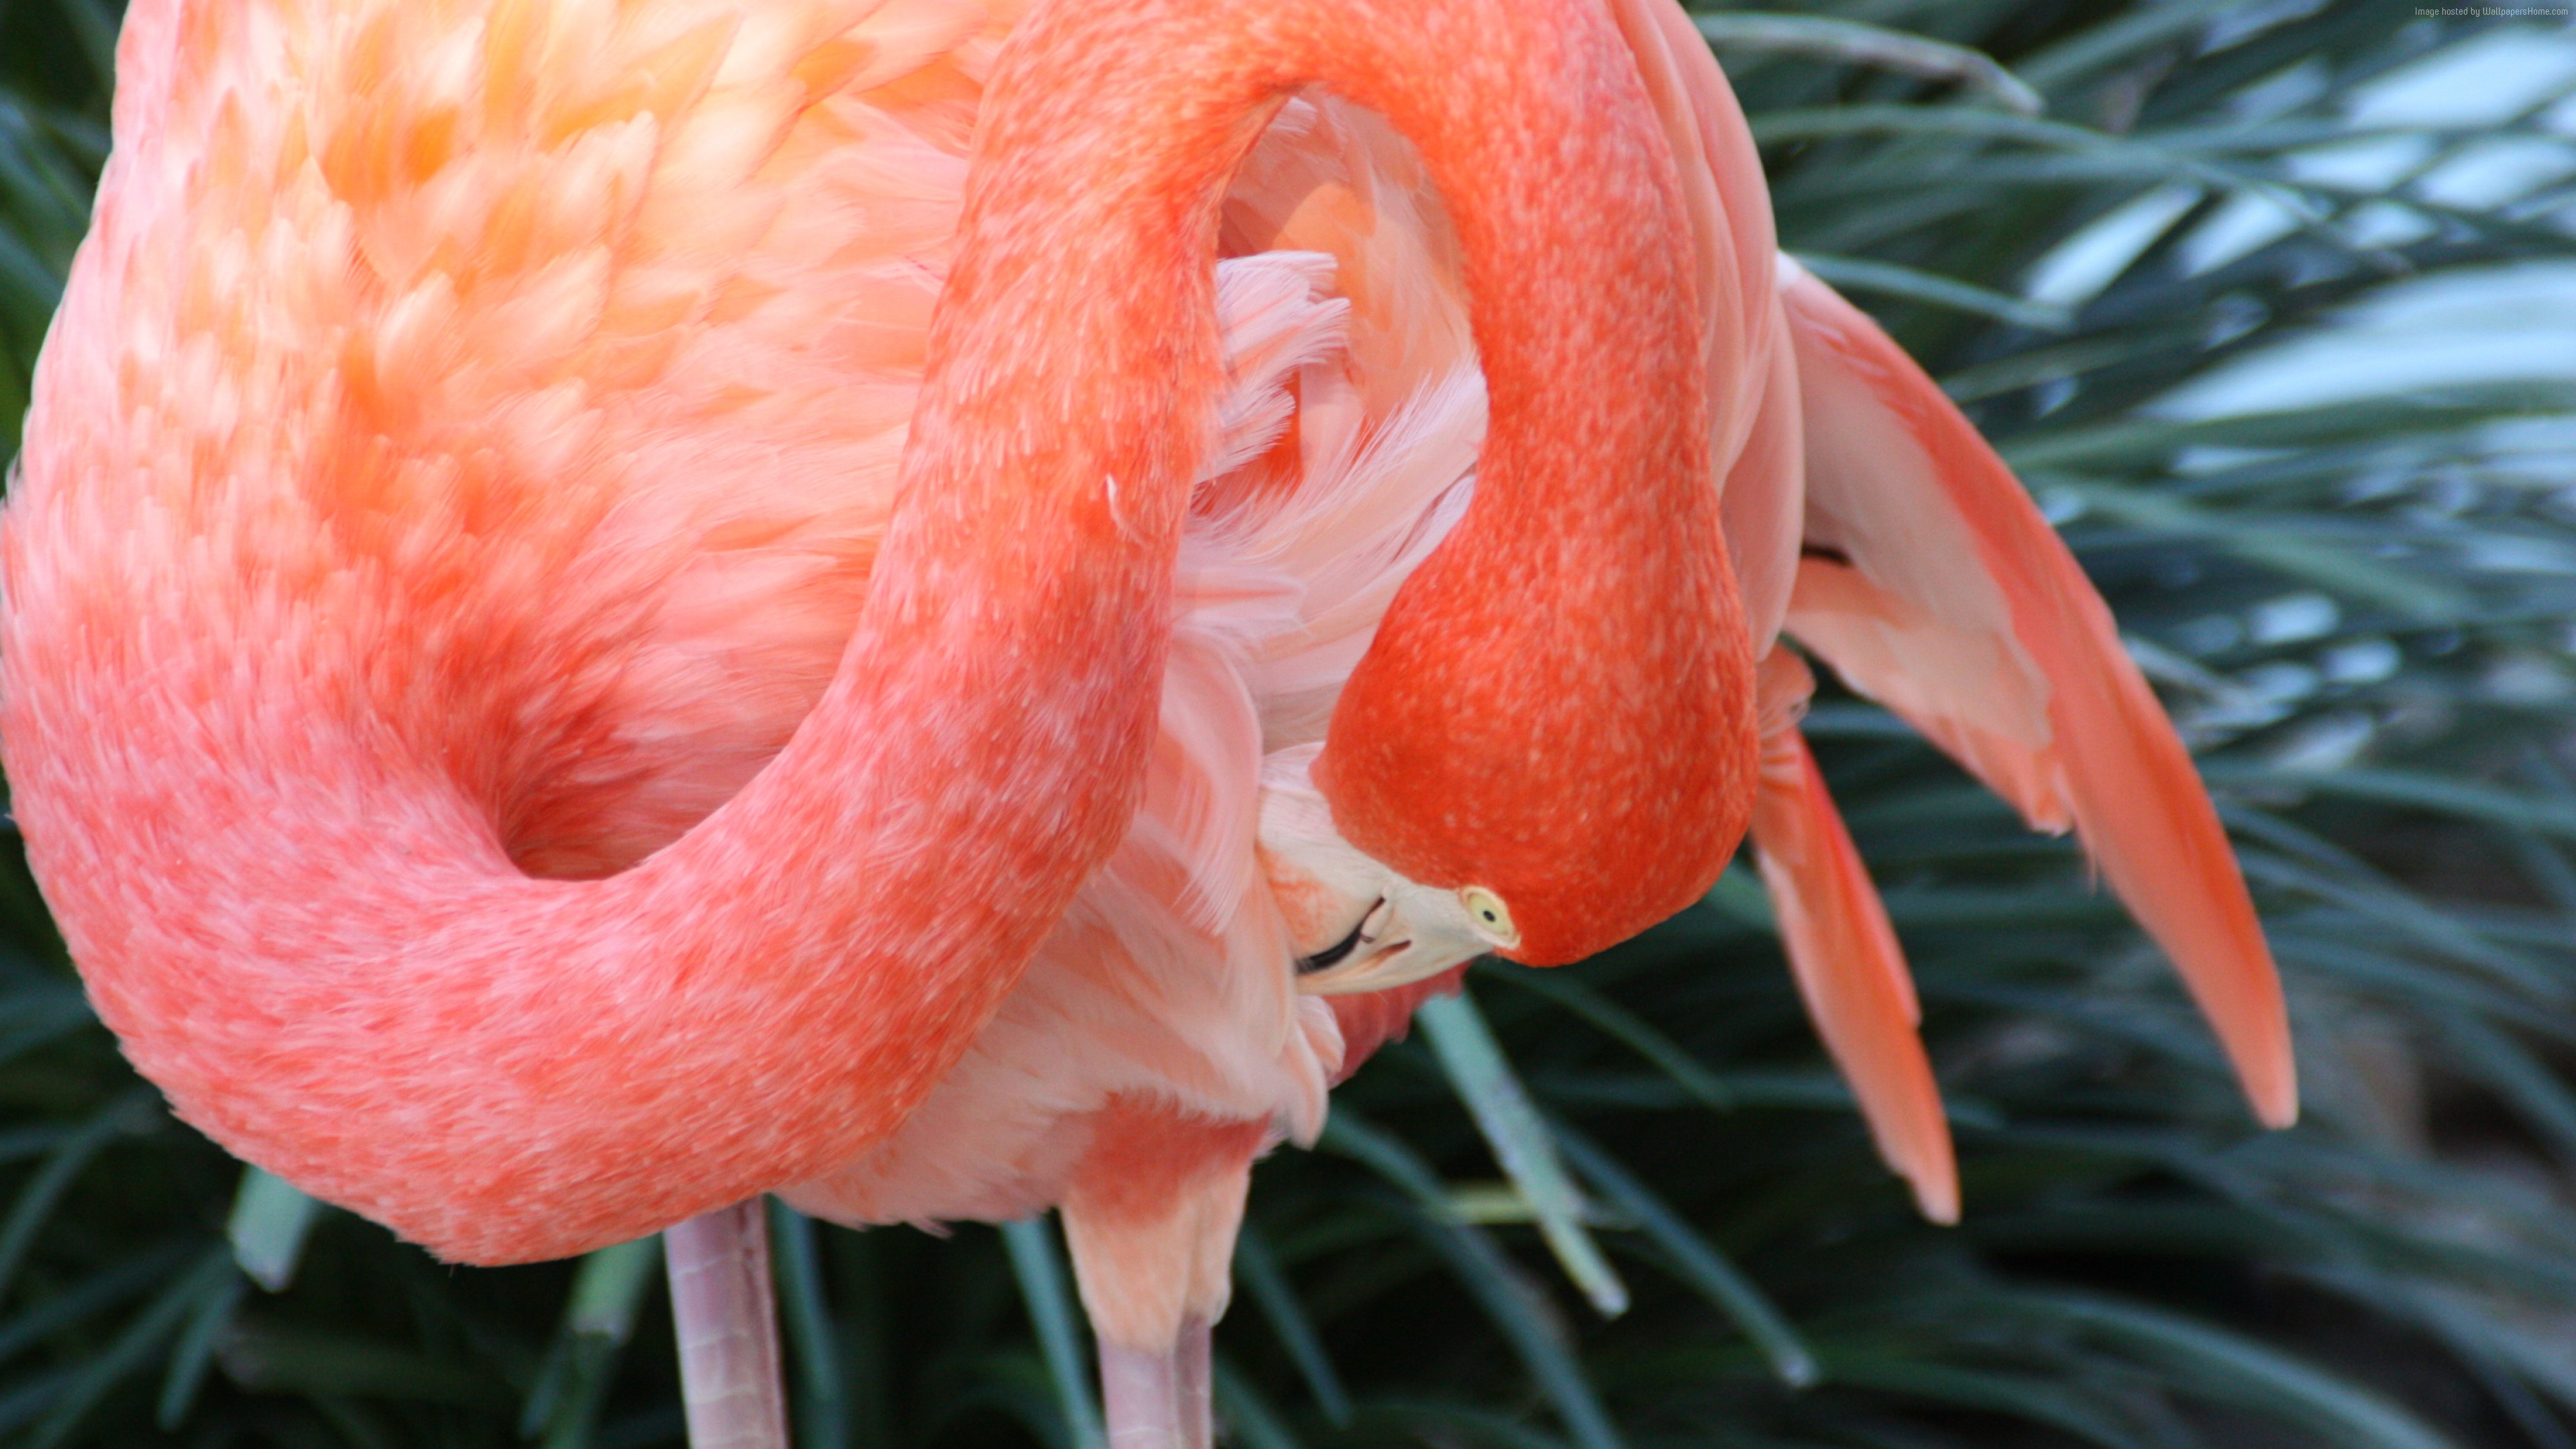 Wallpaper Flamingo, HD, 4k wallpaper, Sun Diego, zoo, bird, red, plumage, tourism, pond, Animals